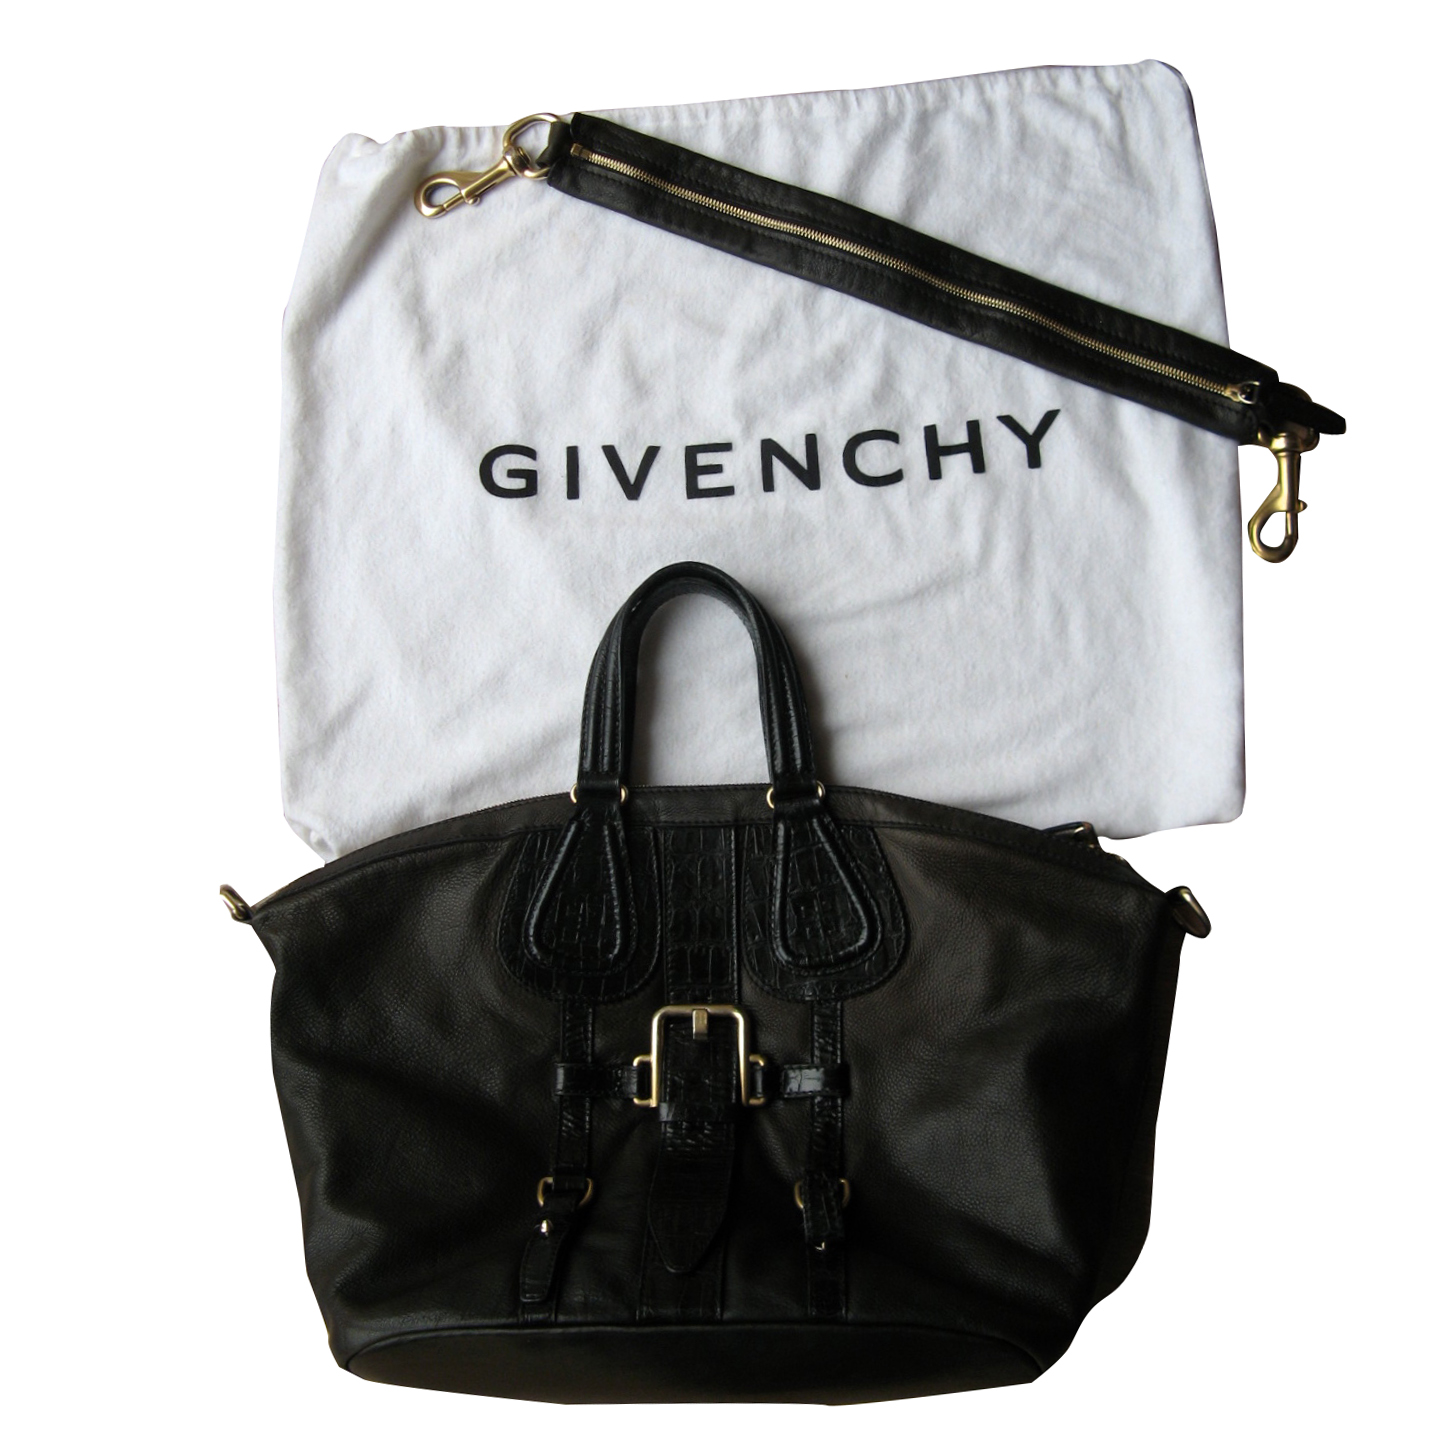 0e4c97648f Givenchy Limited Edition Large Nightingale Bag